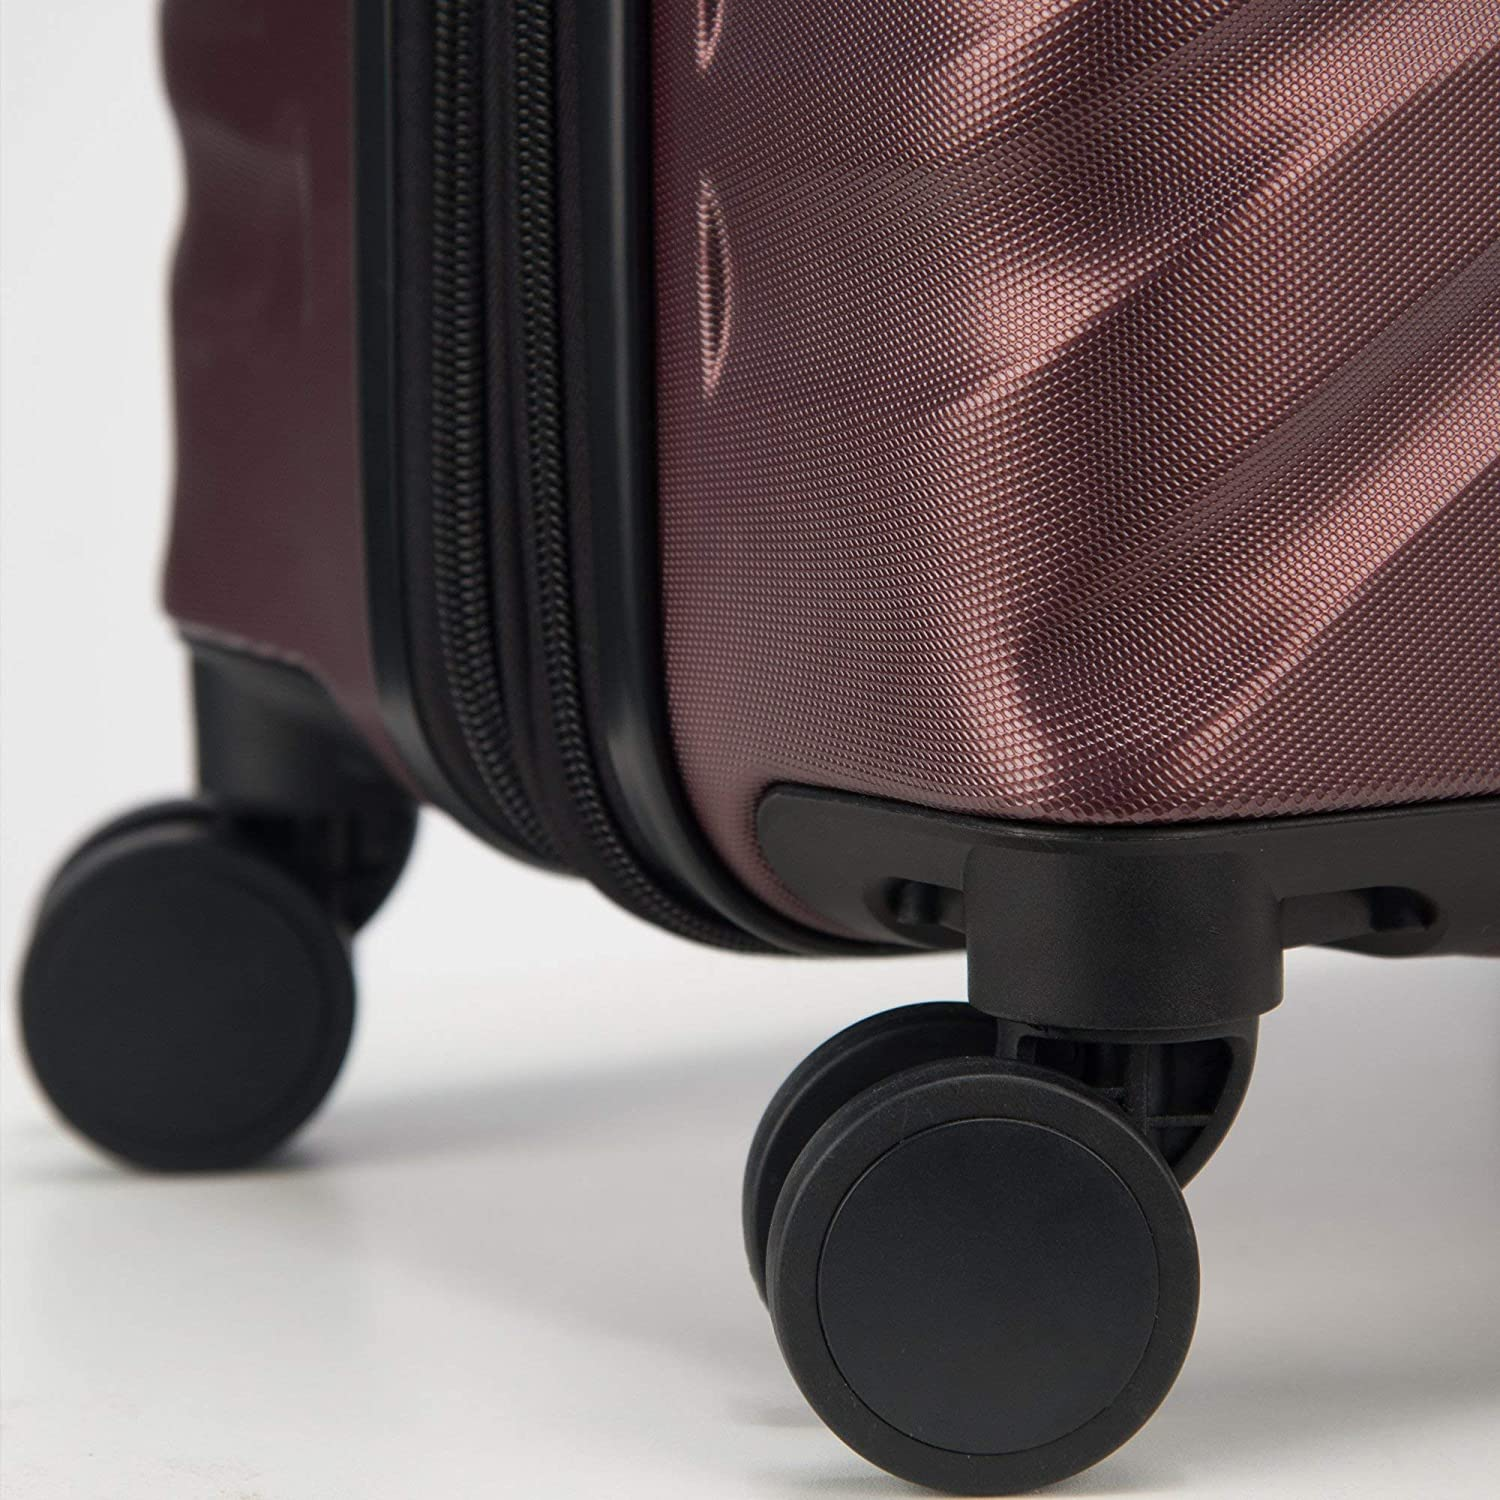 Expandable Spinner Suitcase with TSA Lock and Carry On Delsey Alexis Lightweight Luggage Set 3 Piece Double Wheel Hardshell Suitcases 21//25 Black//Rose Gold, 2-piece Set